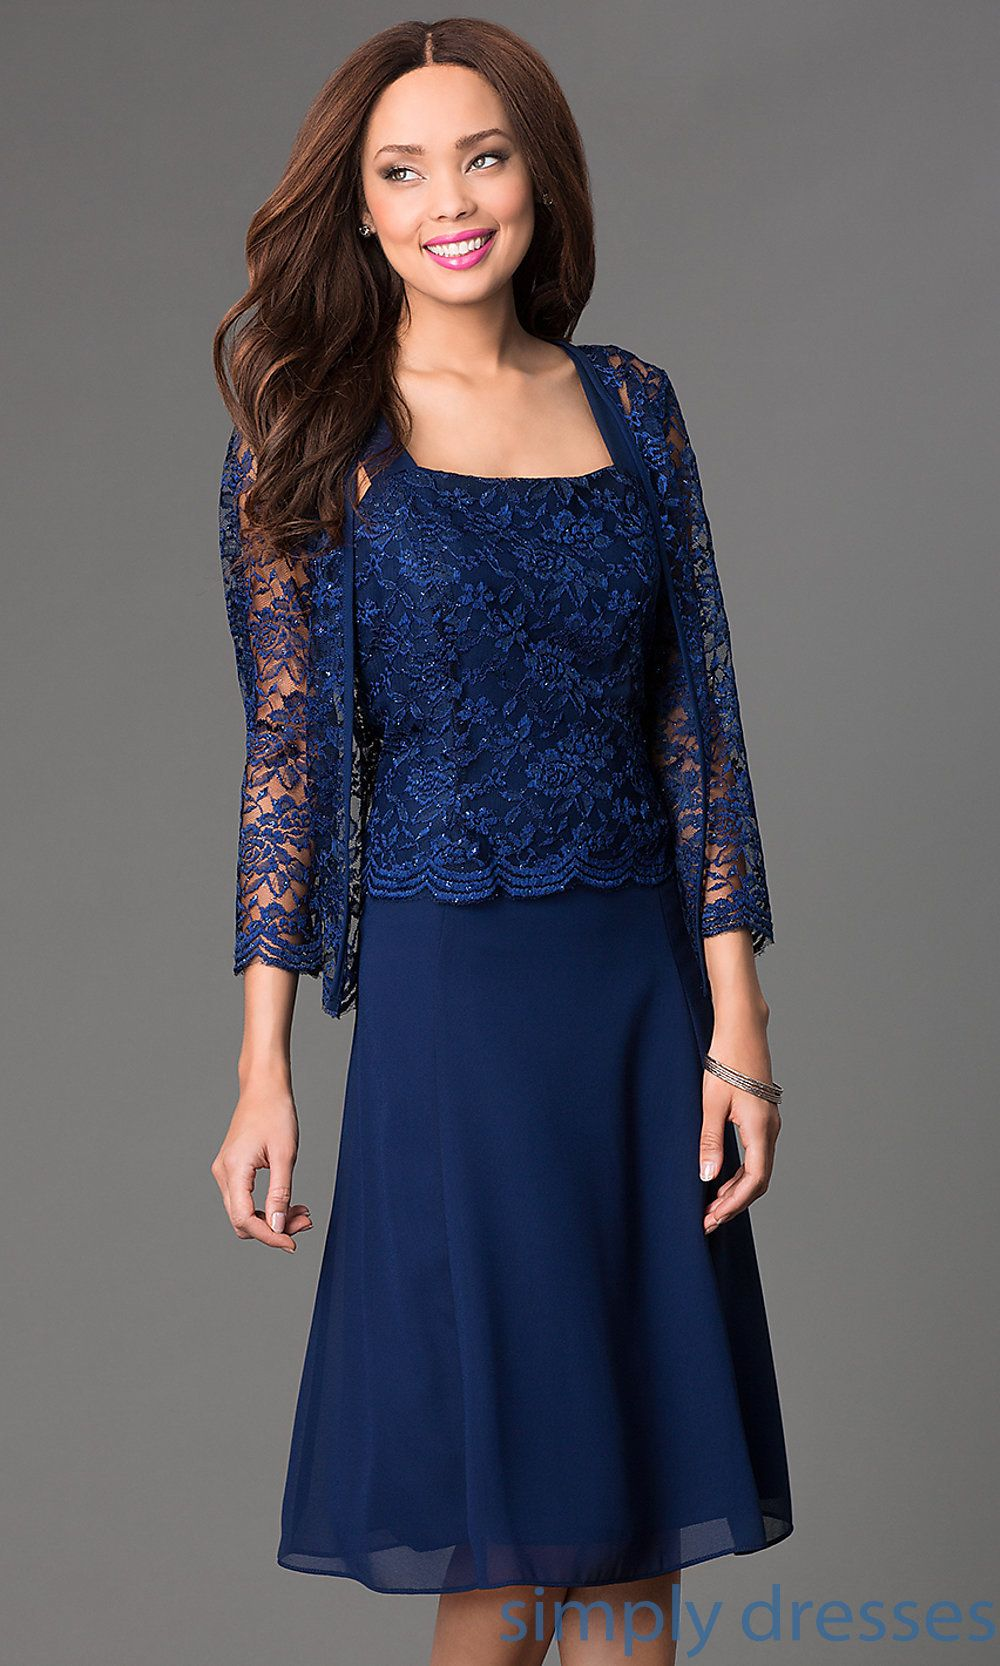 Sally fashion kneelength lace dress with jacket pinterest lace